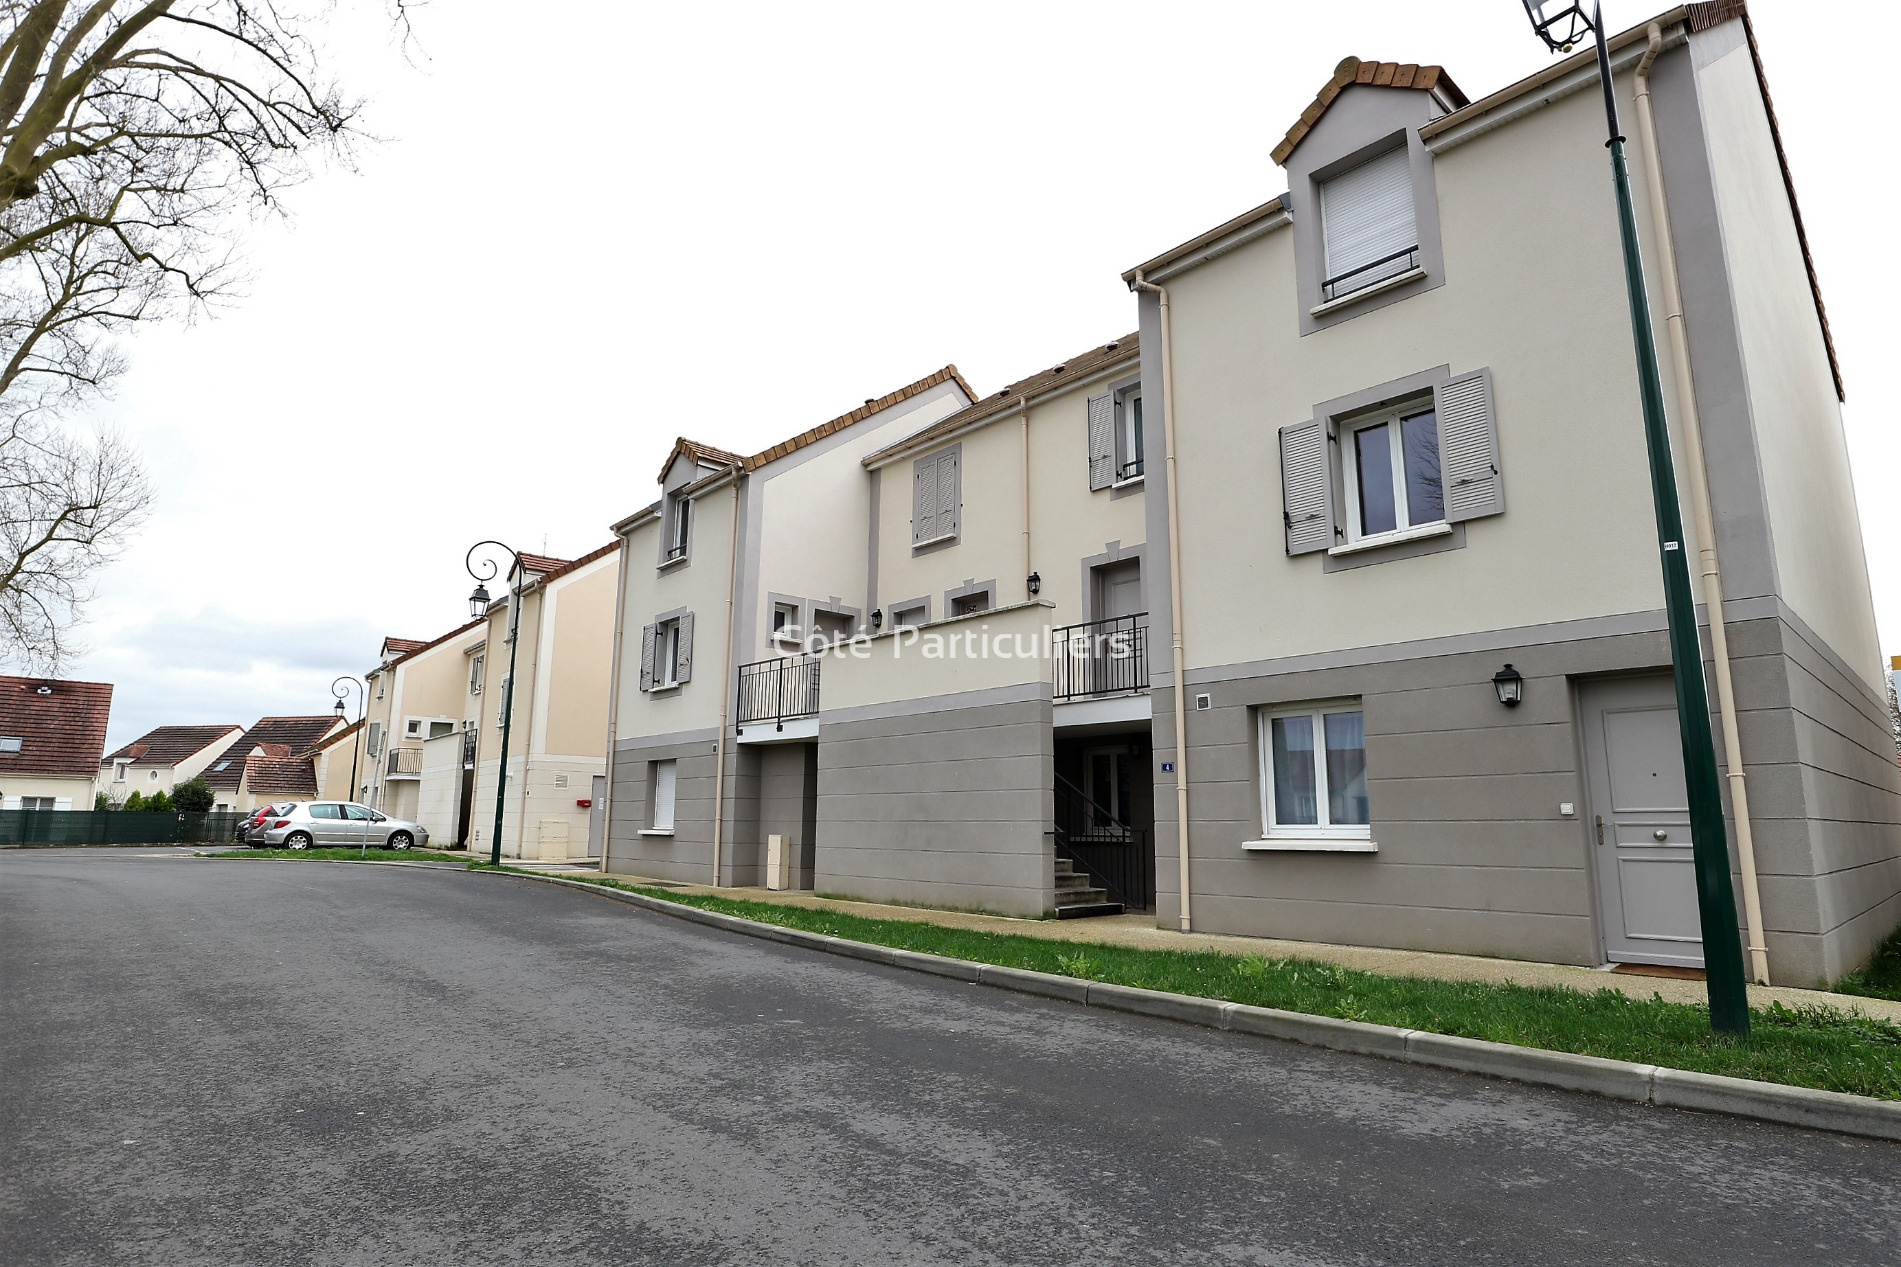 Annonce vente maison santeny 94440 61 m 228 000 for Appartement maison fr